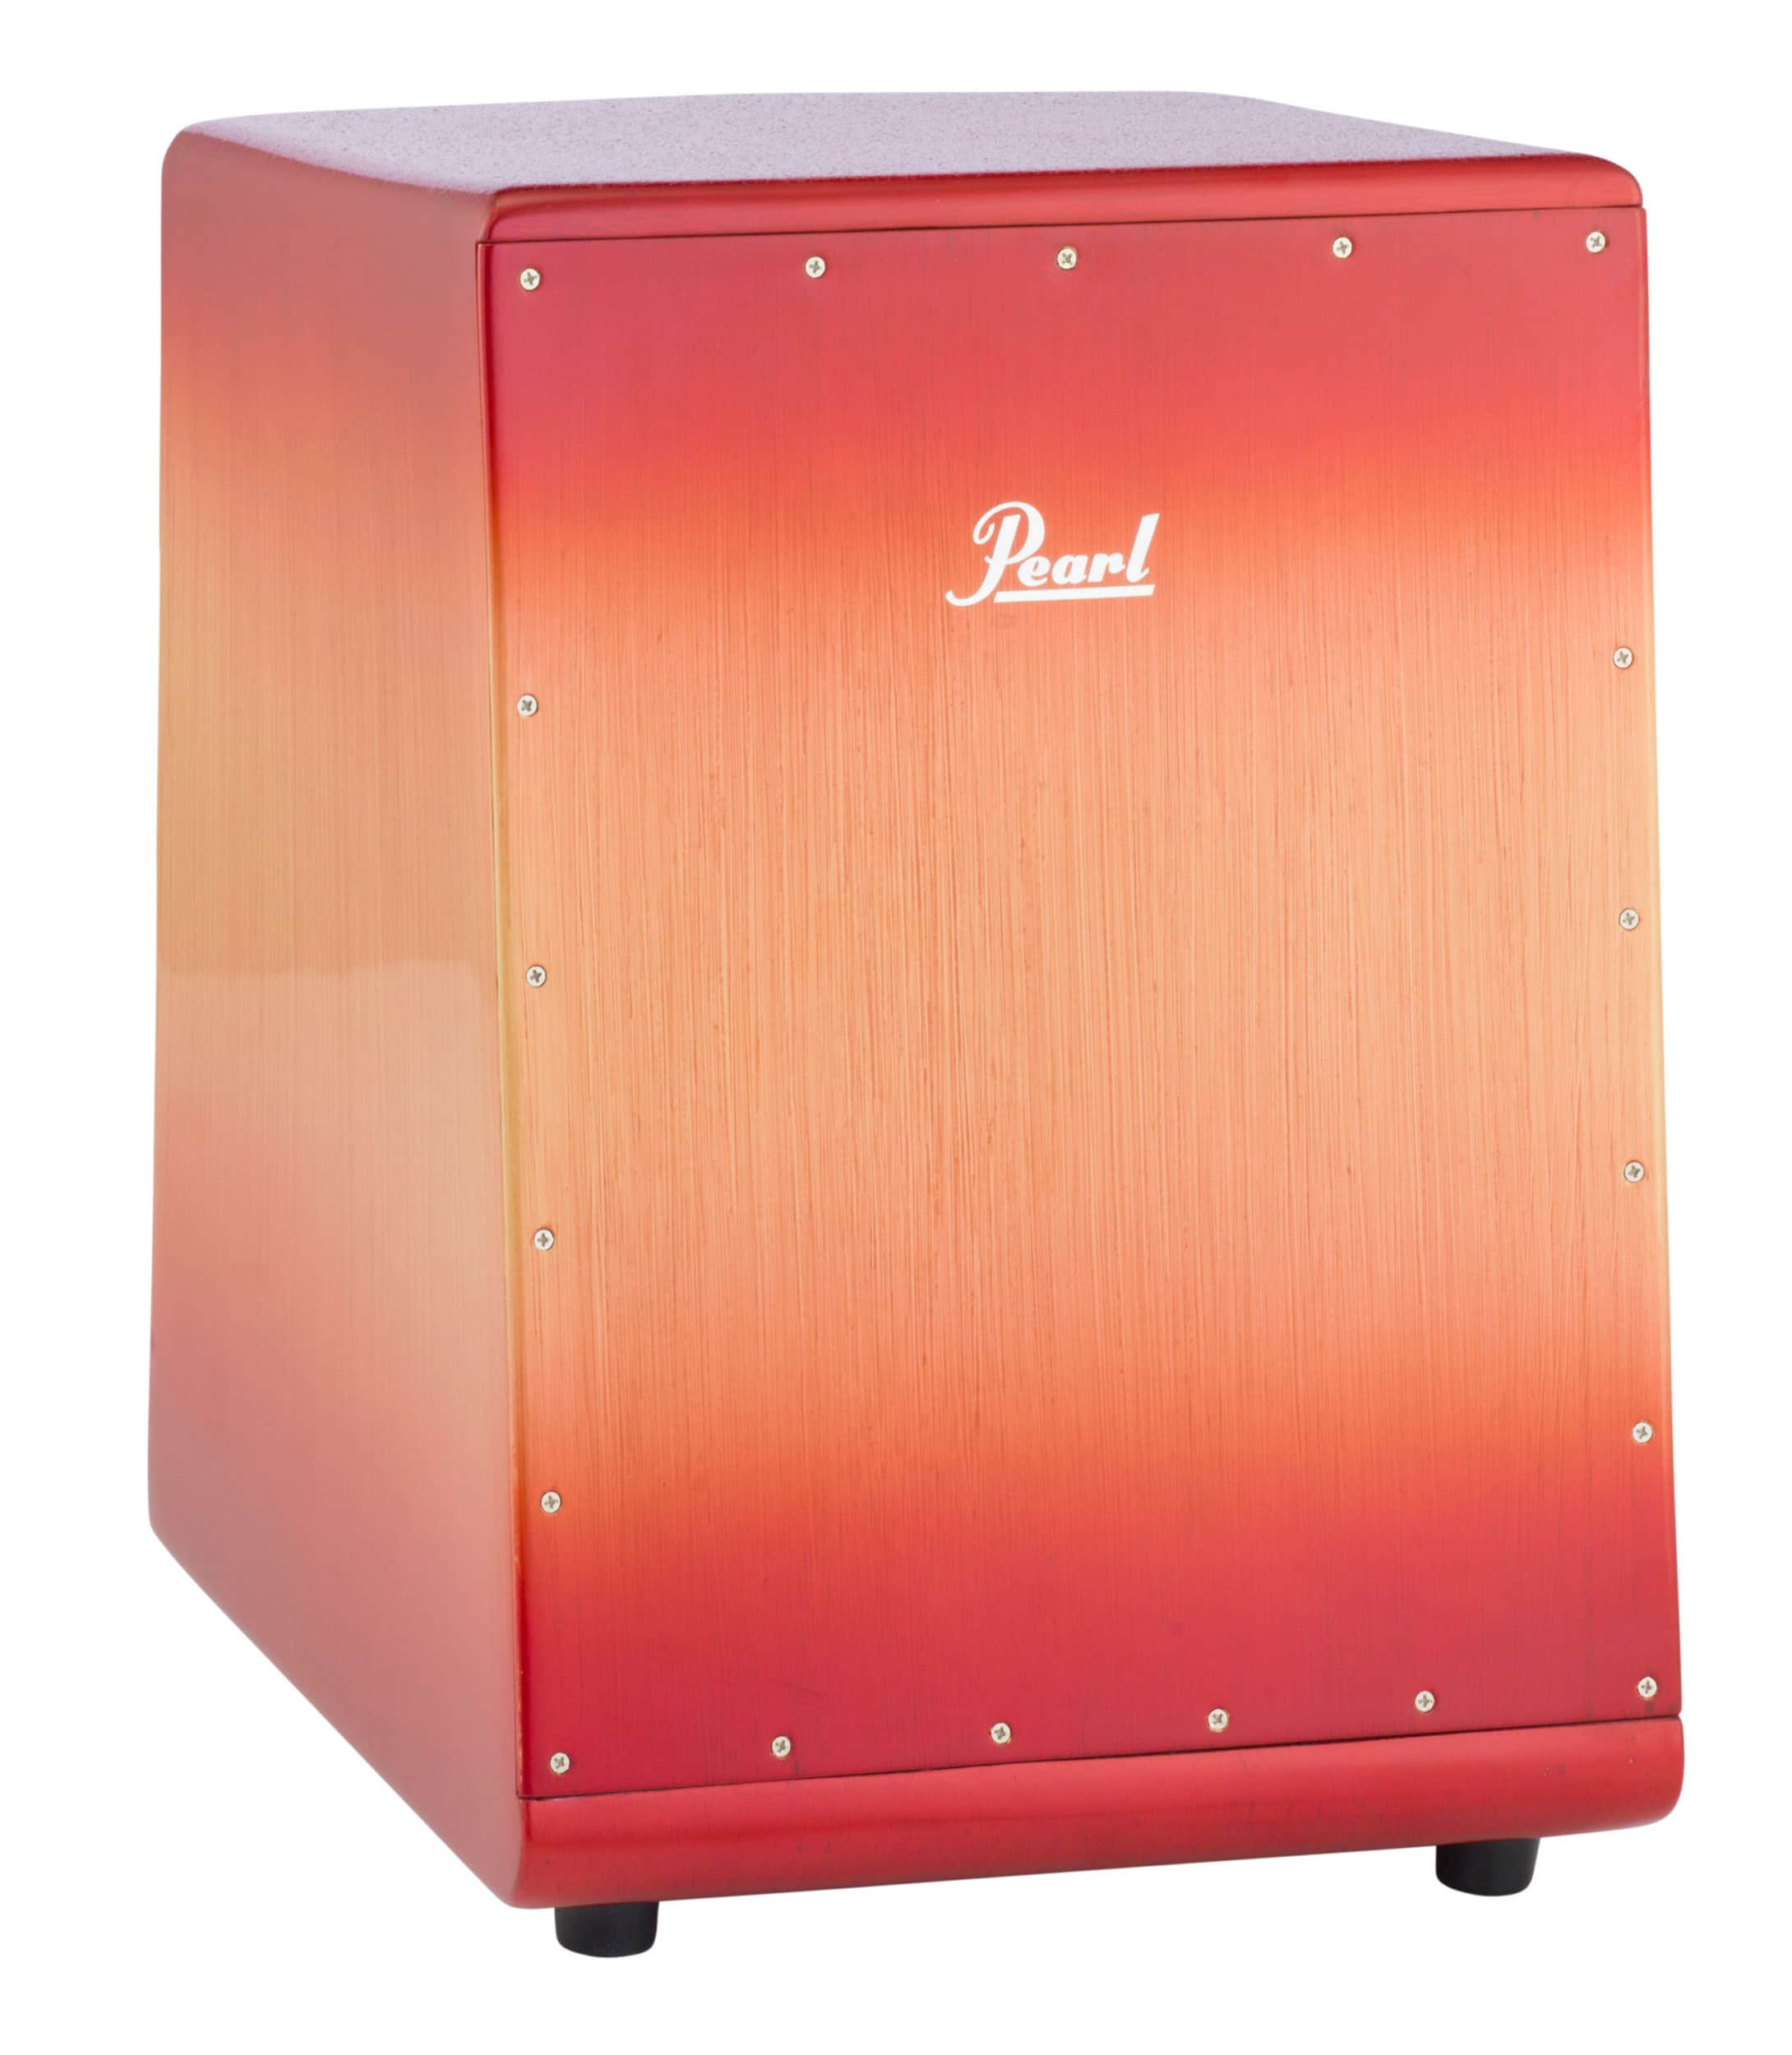 Buy Pearl PCJ 650CG CentiGRADE Cajon Mango Cherry Burst Melody House